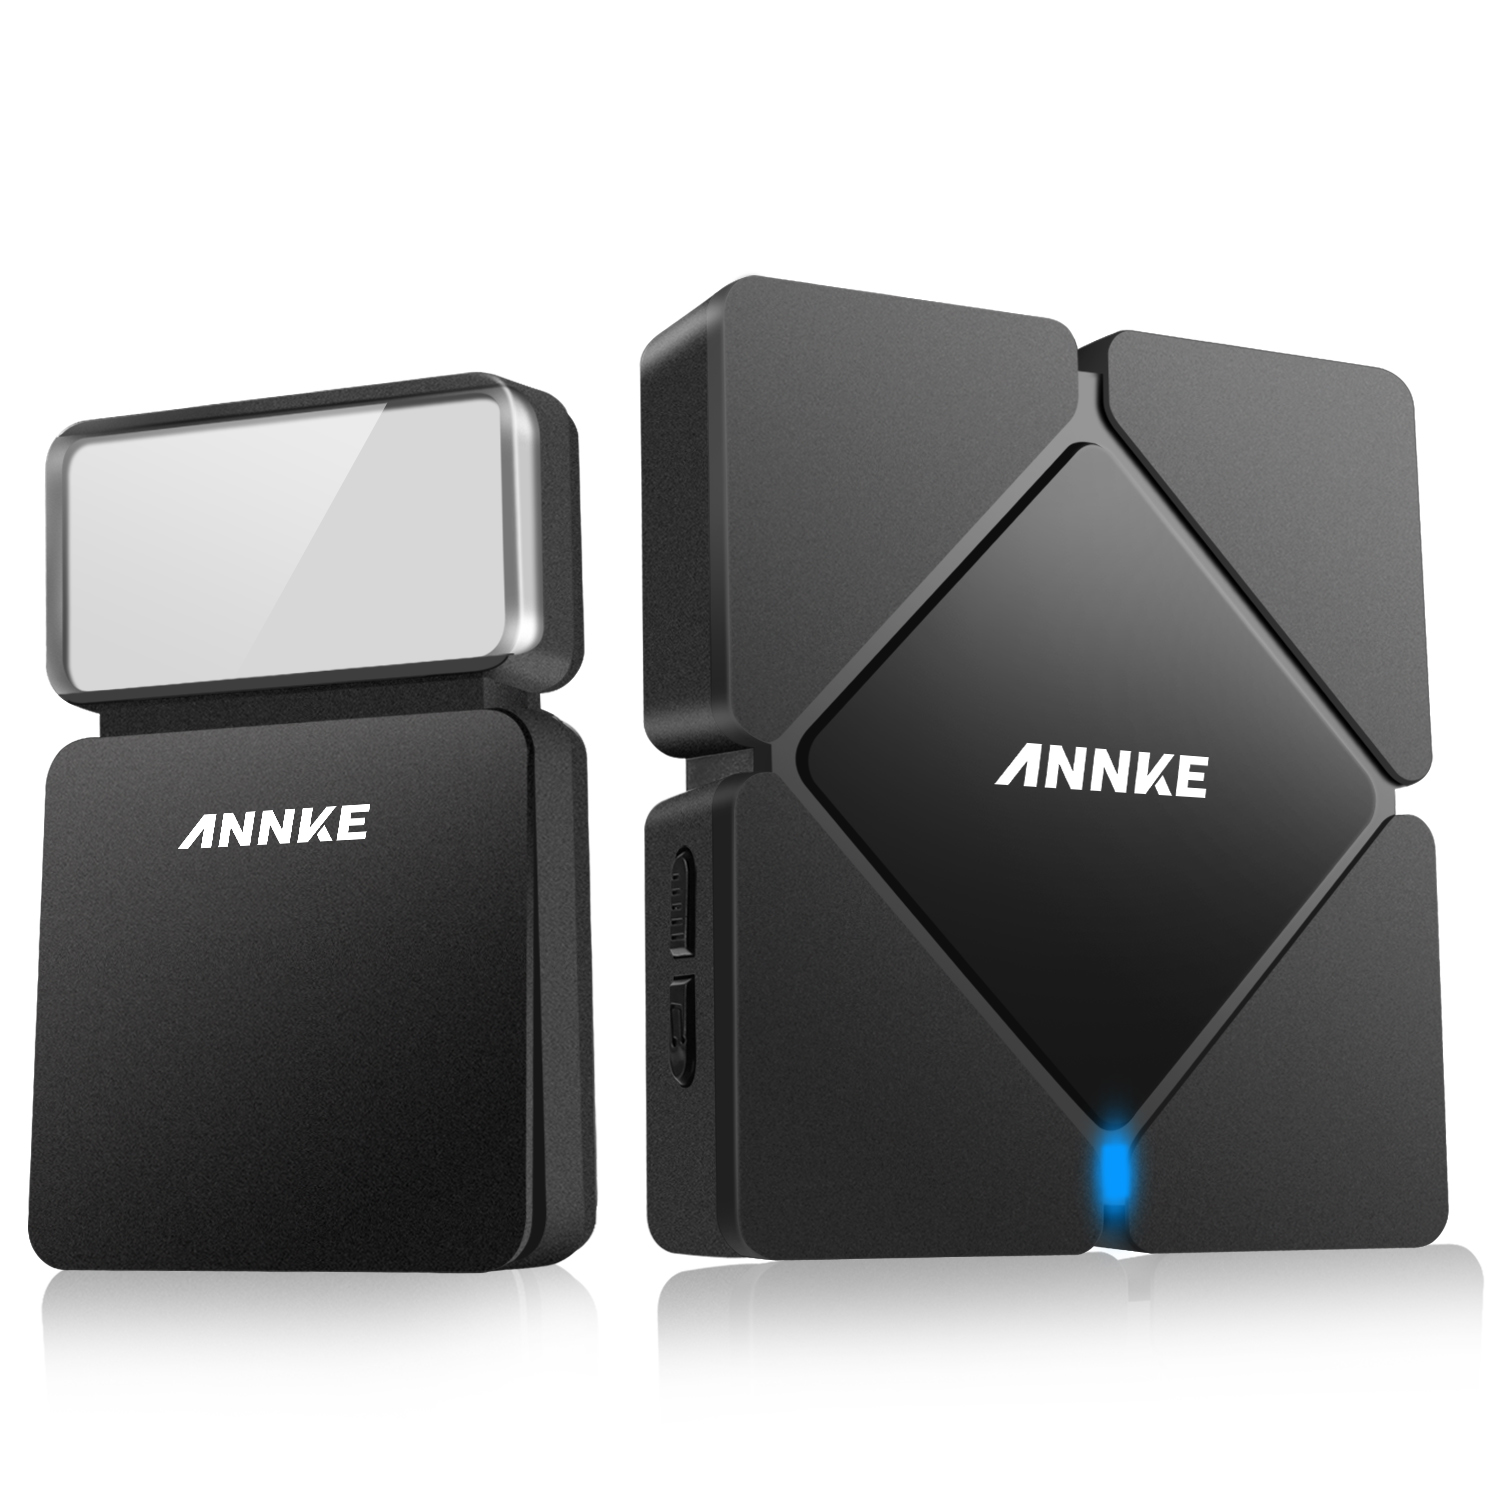 ANNKE EU Modern Wireless Battery-Free Doorbell Home Battery-Free Smart Doorkeeper Up To 110m Wireless Transmission Range